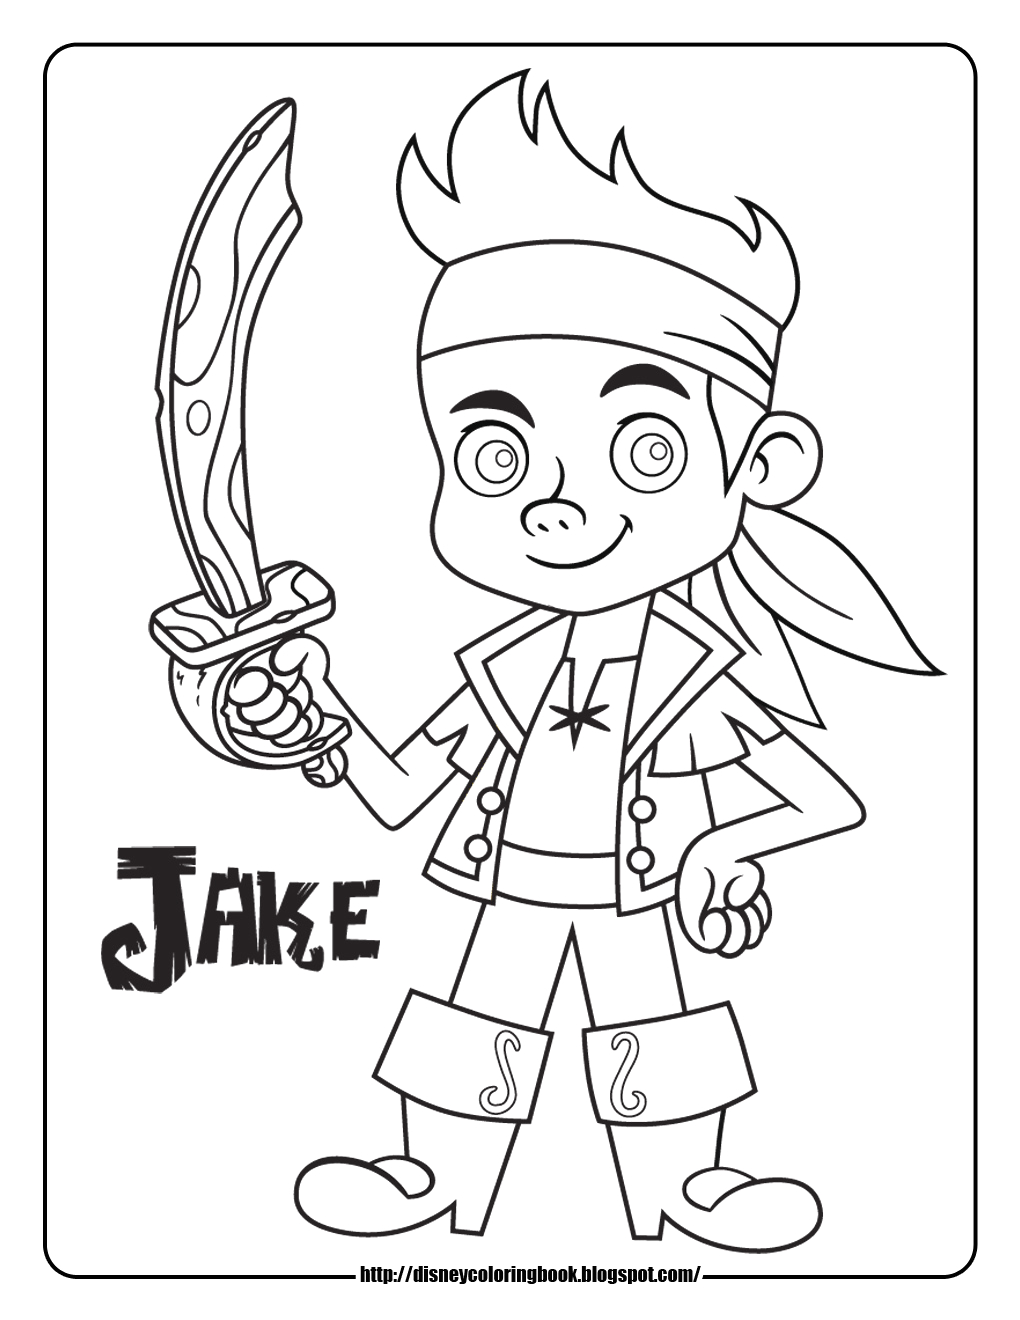 Jake and the Neverland Pirates Free Coloring Pages Jake and the Neverland Pirates 1 Free Disney Coloring